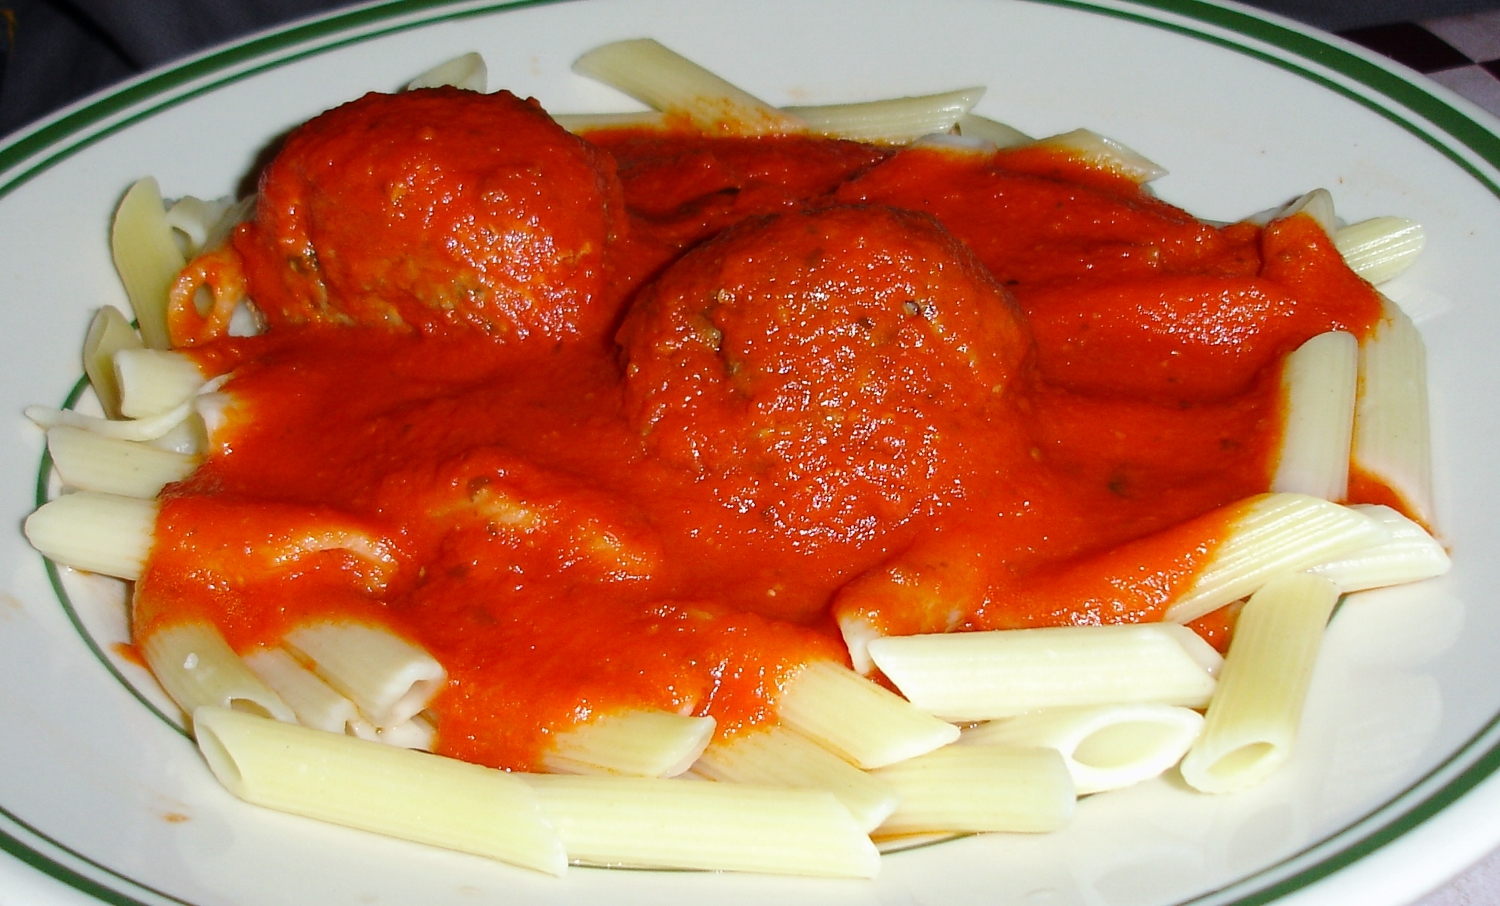 Pencil points are the patron pasta of Trenton, here topped with marinara and meatballs.